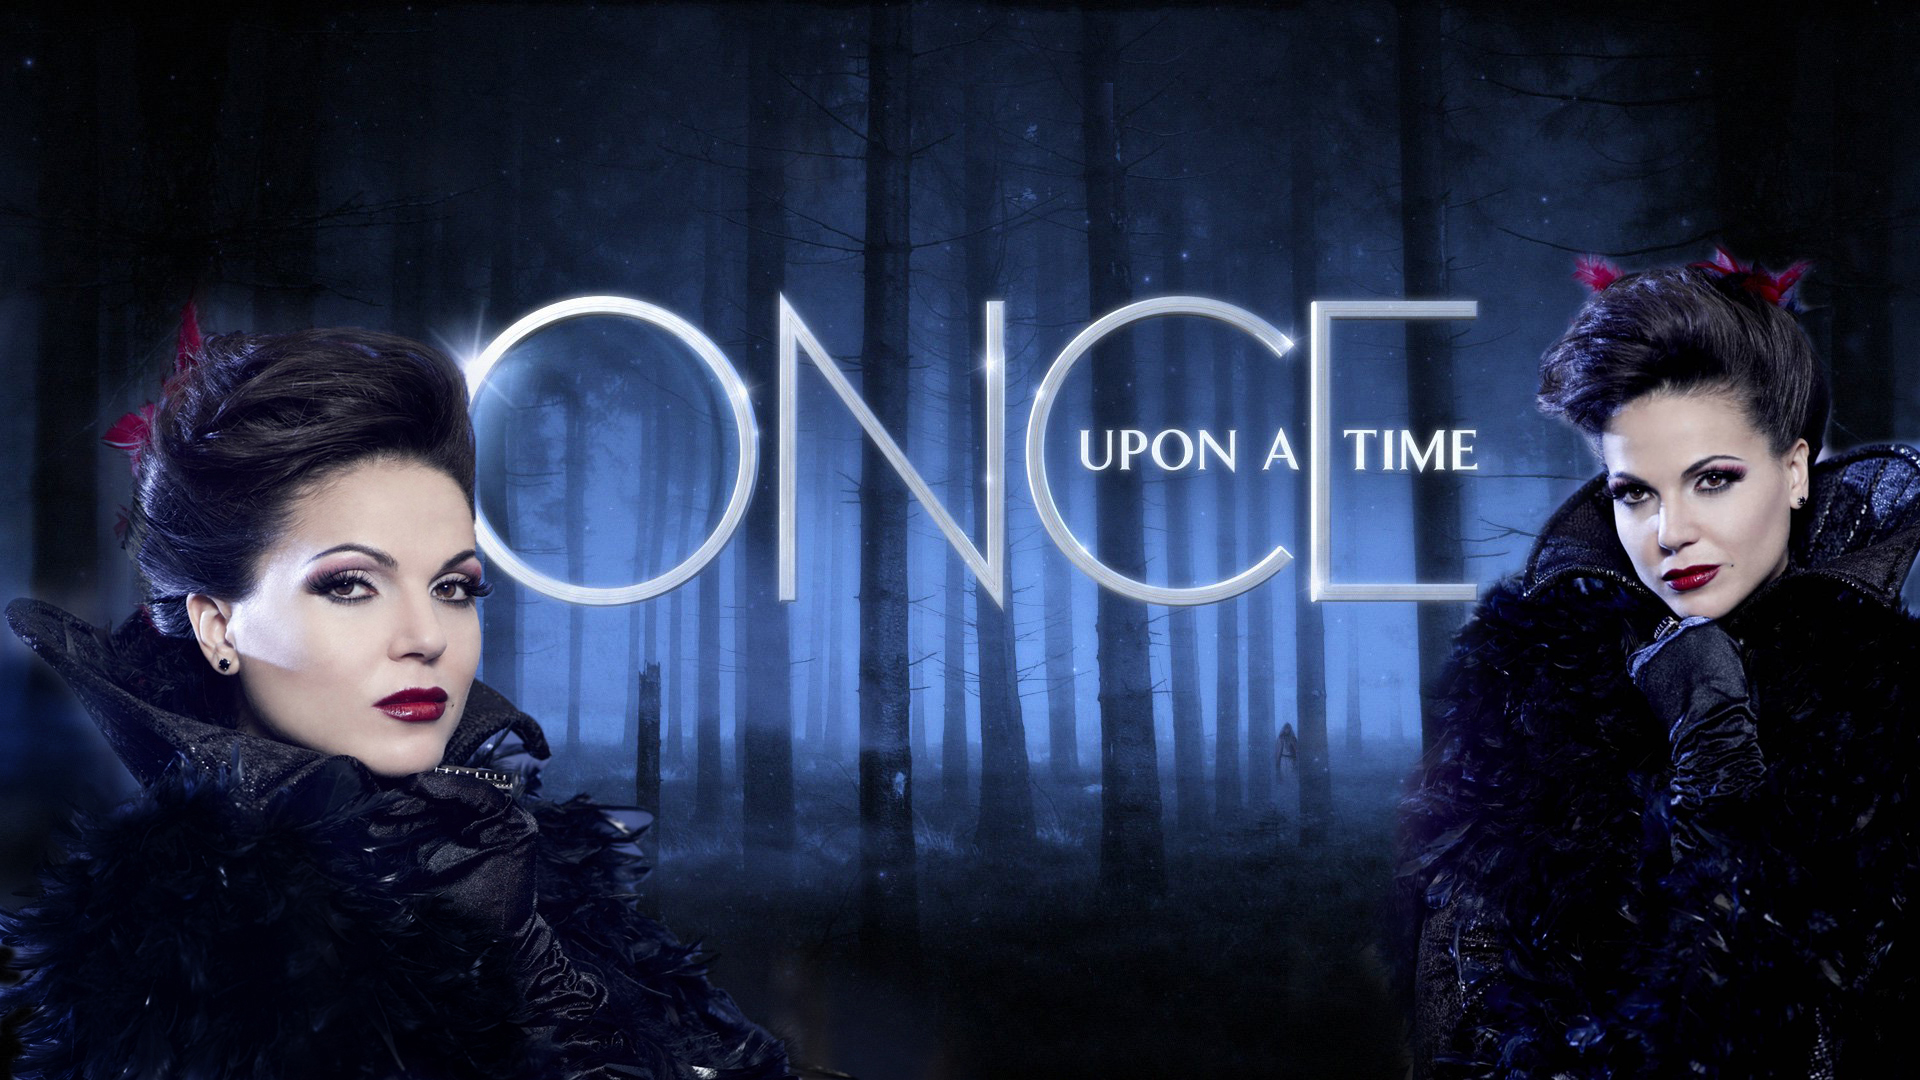 ouat villains images evil 皇后乐队 - ouat hd wallpaper and